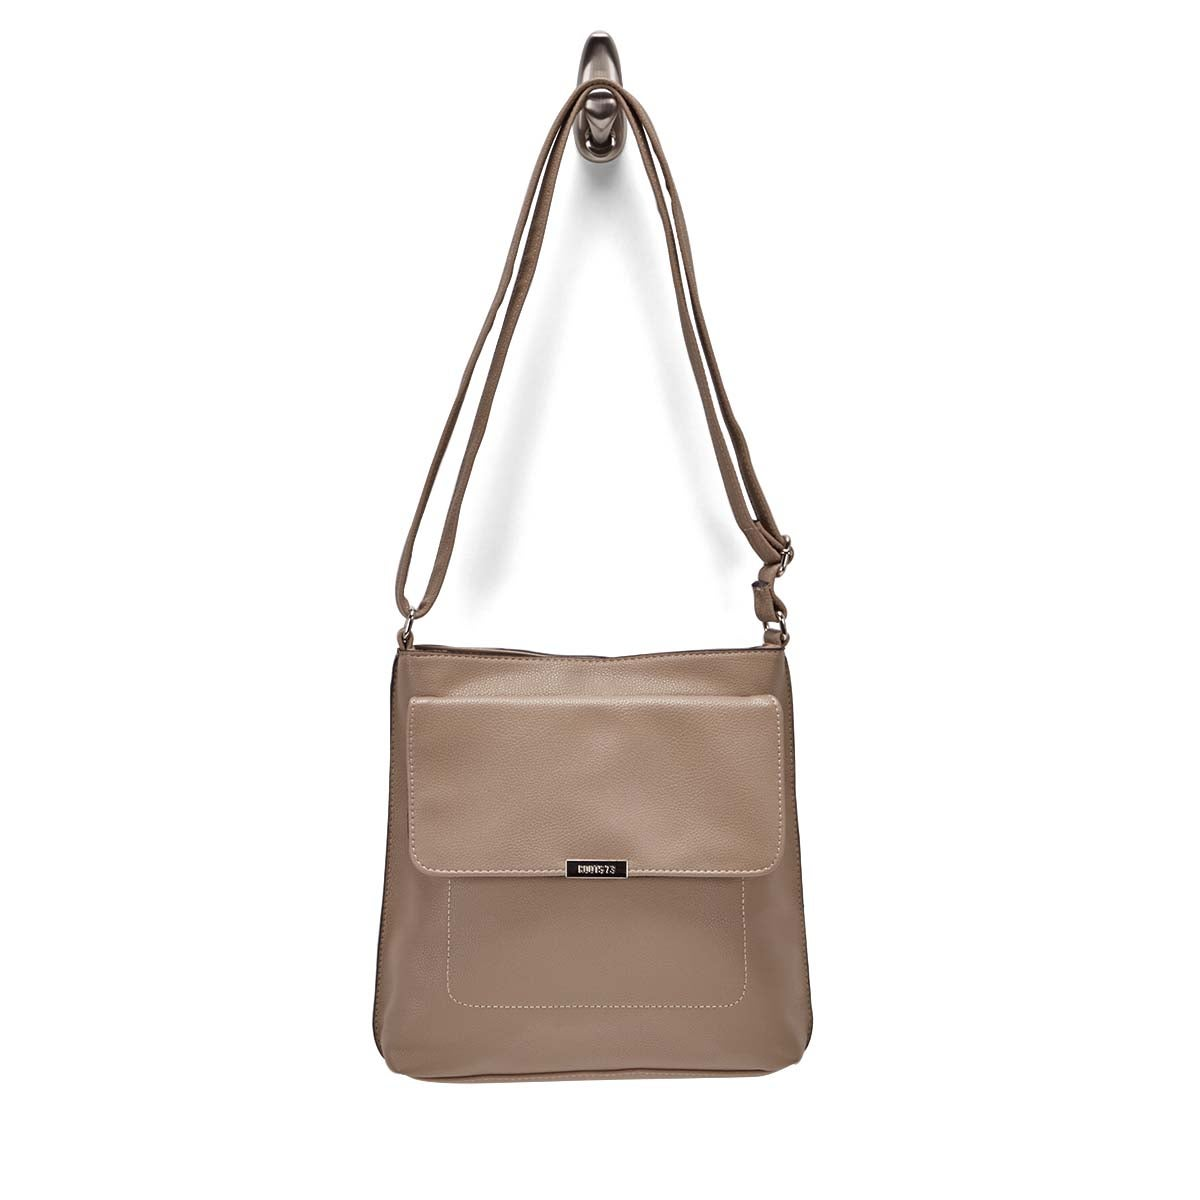 Lds Roots73 taupe front flap crossbody